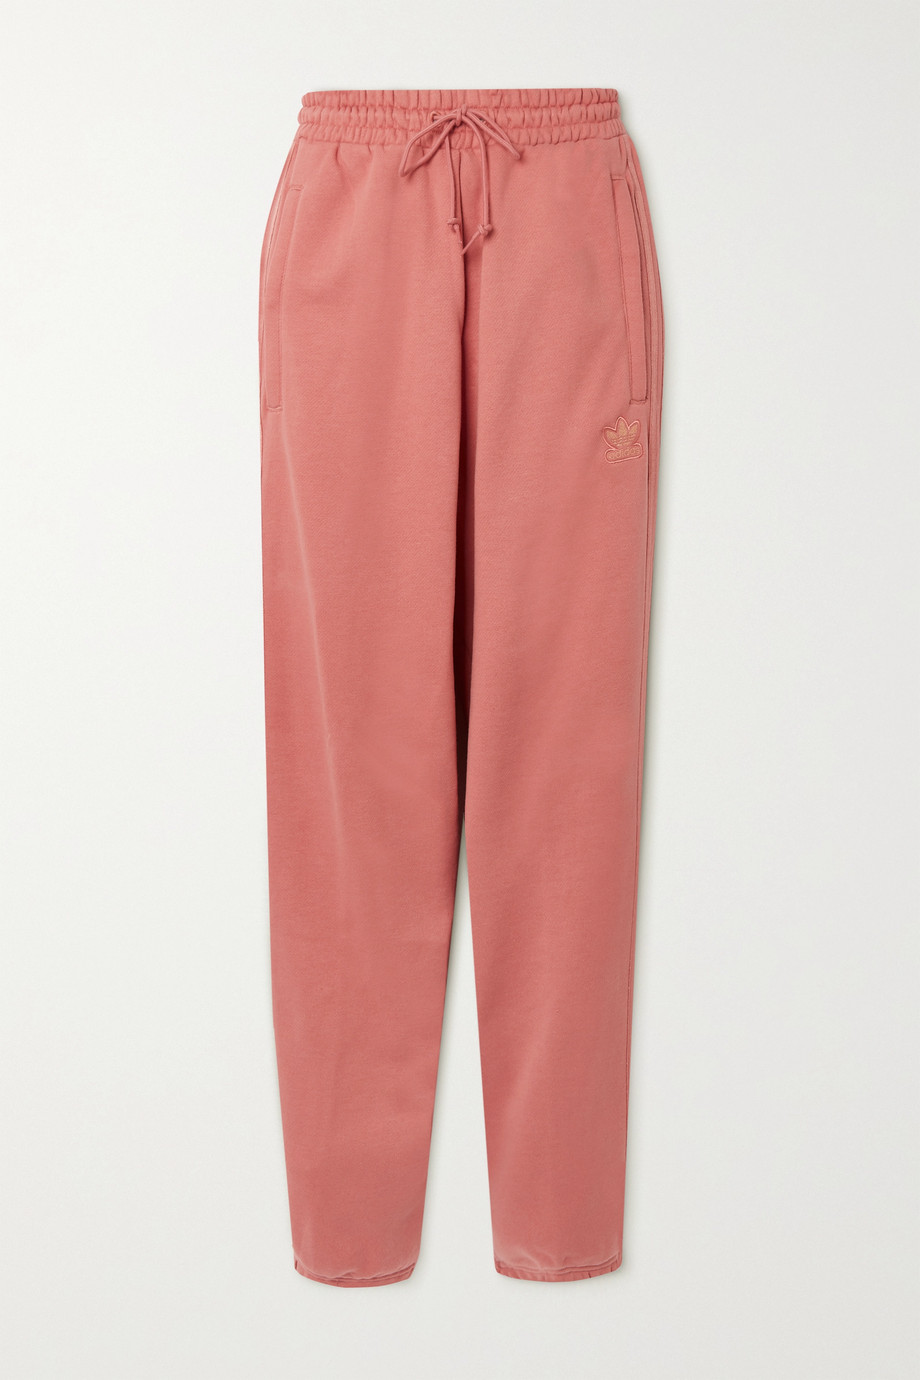 ADIDAS ORIGINALS Metallic-striped French cotton-terry track pants